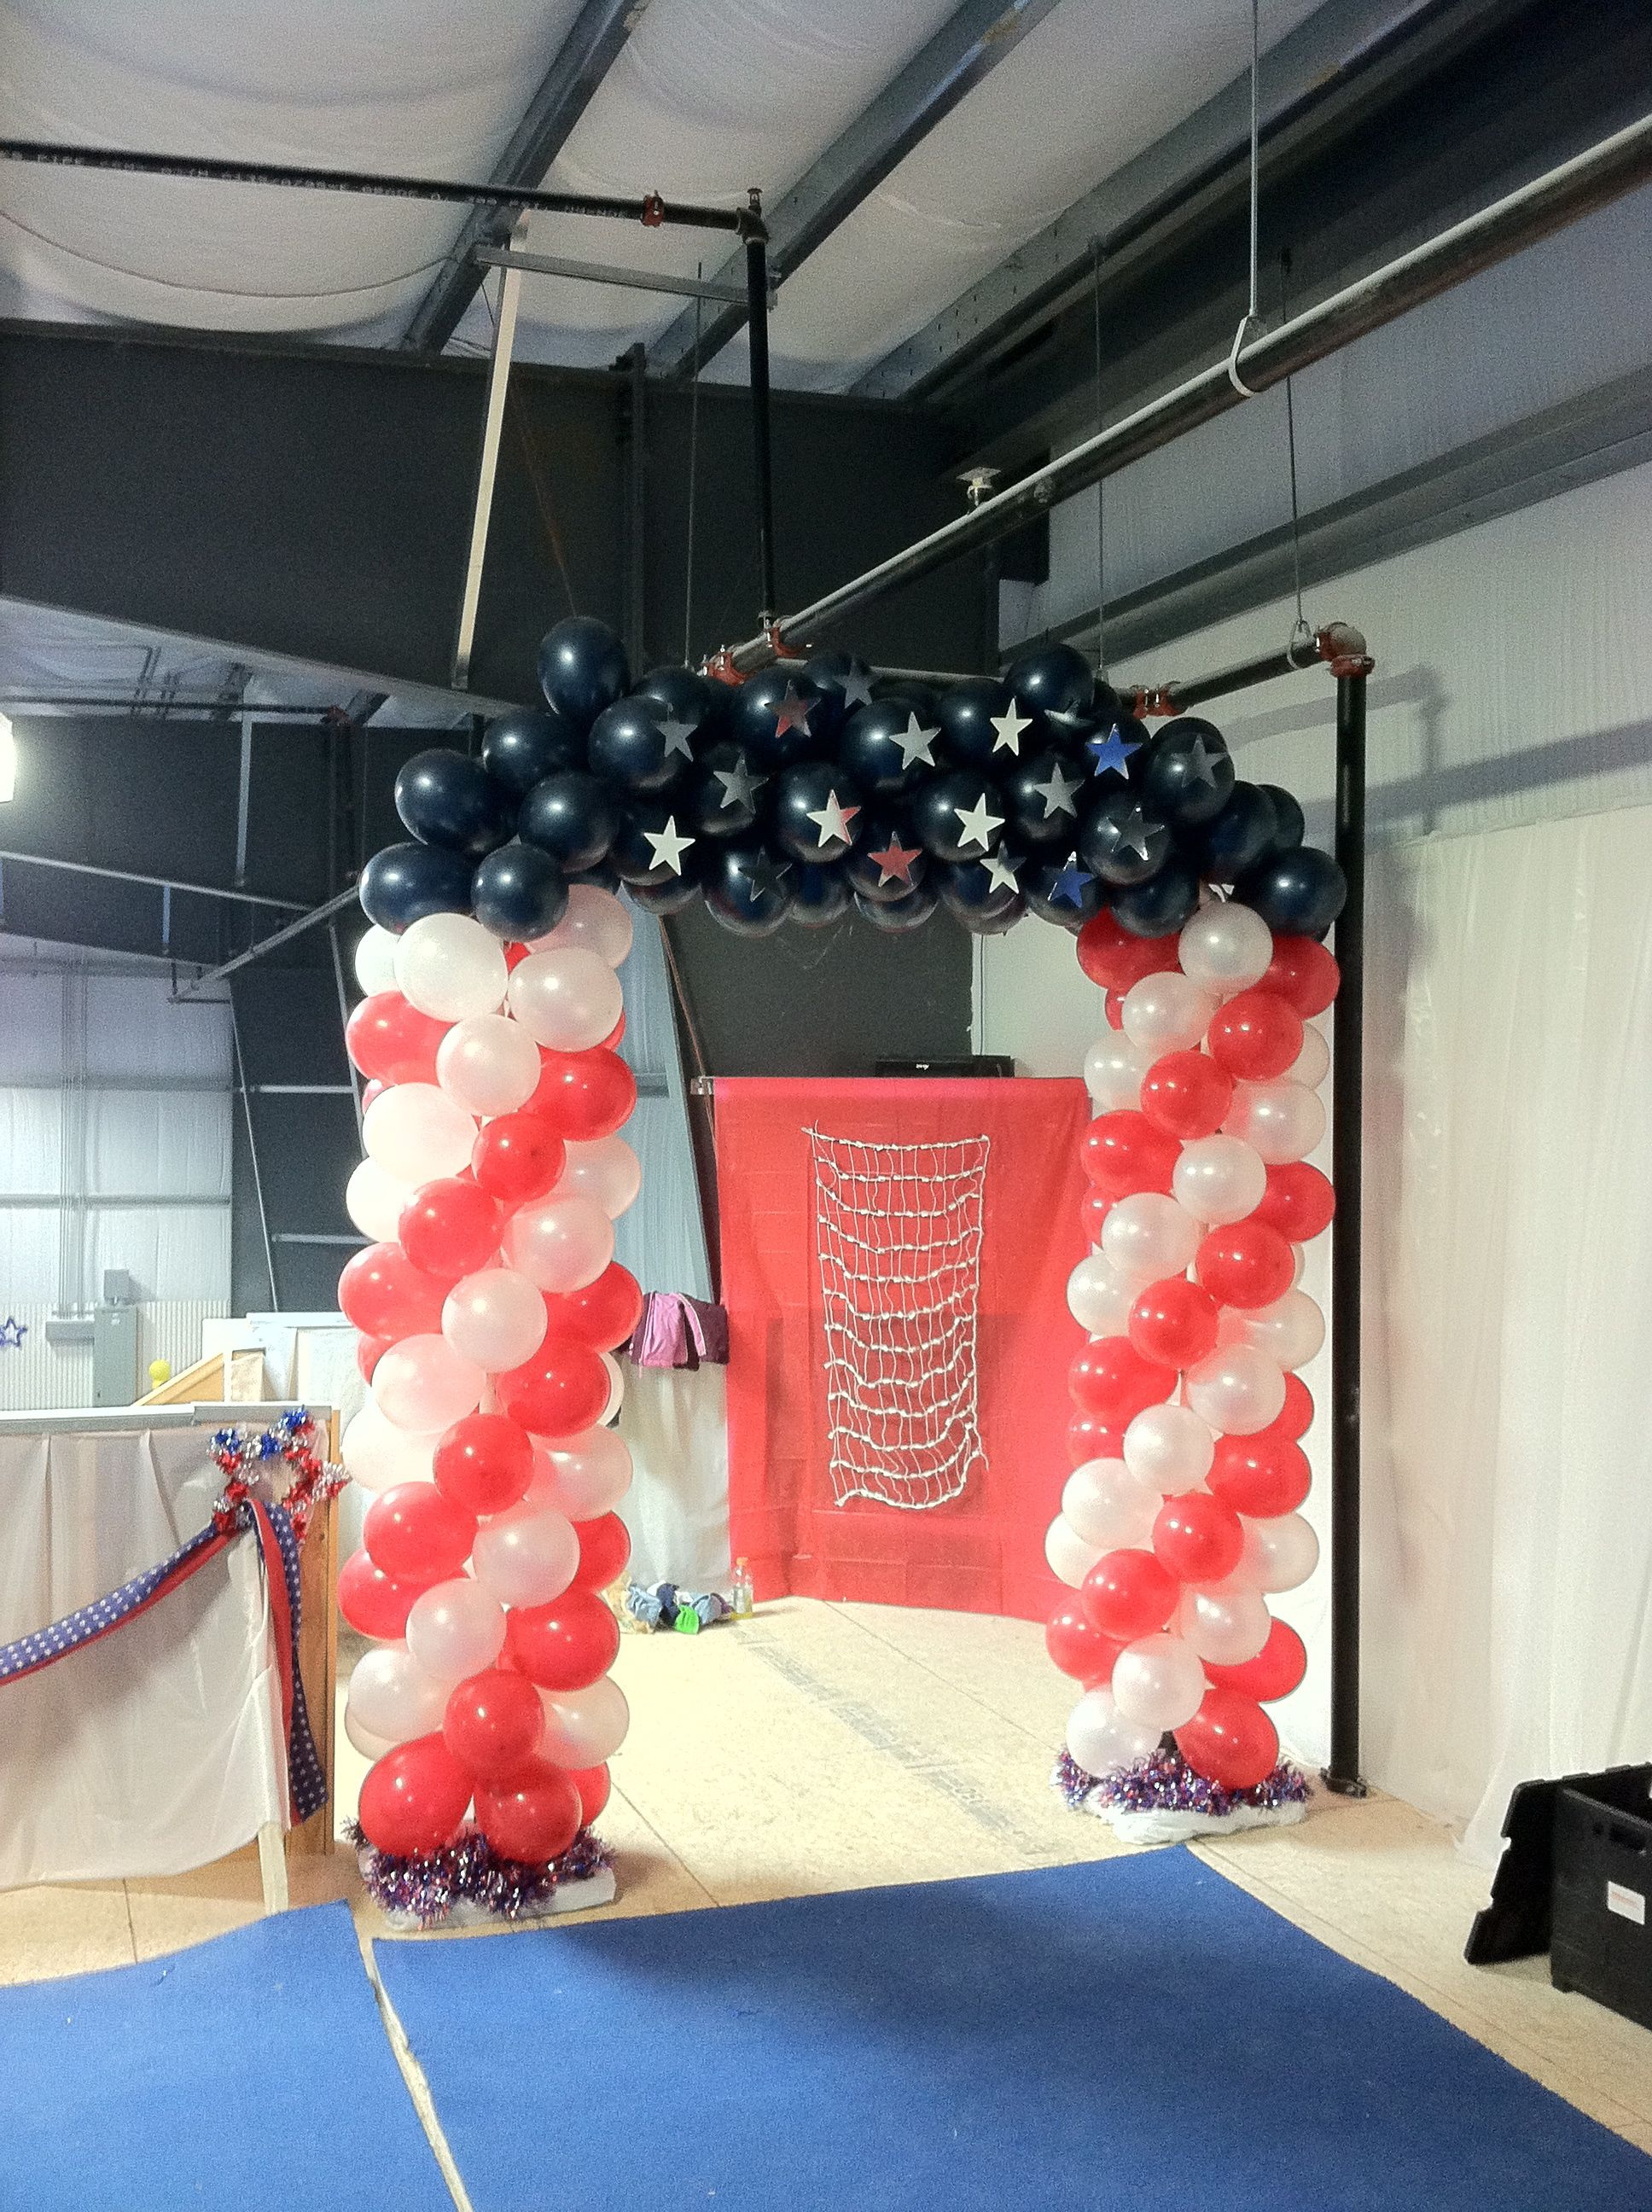 Balloon arch pvc frame cardboard silver stars attached